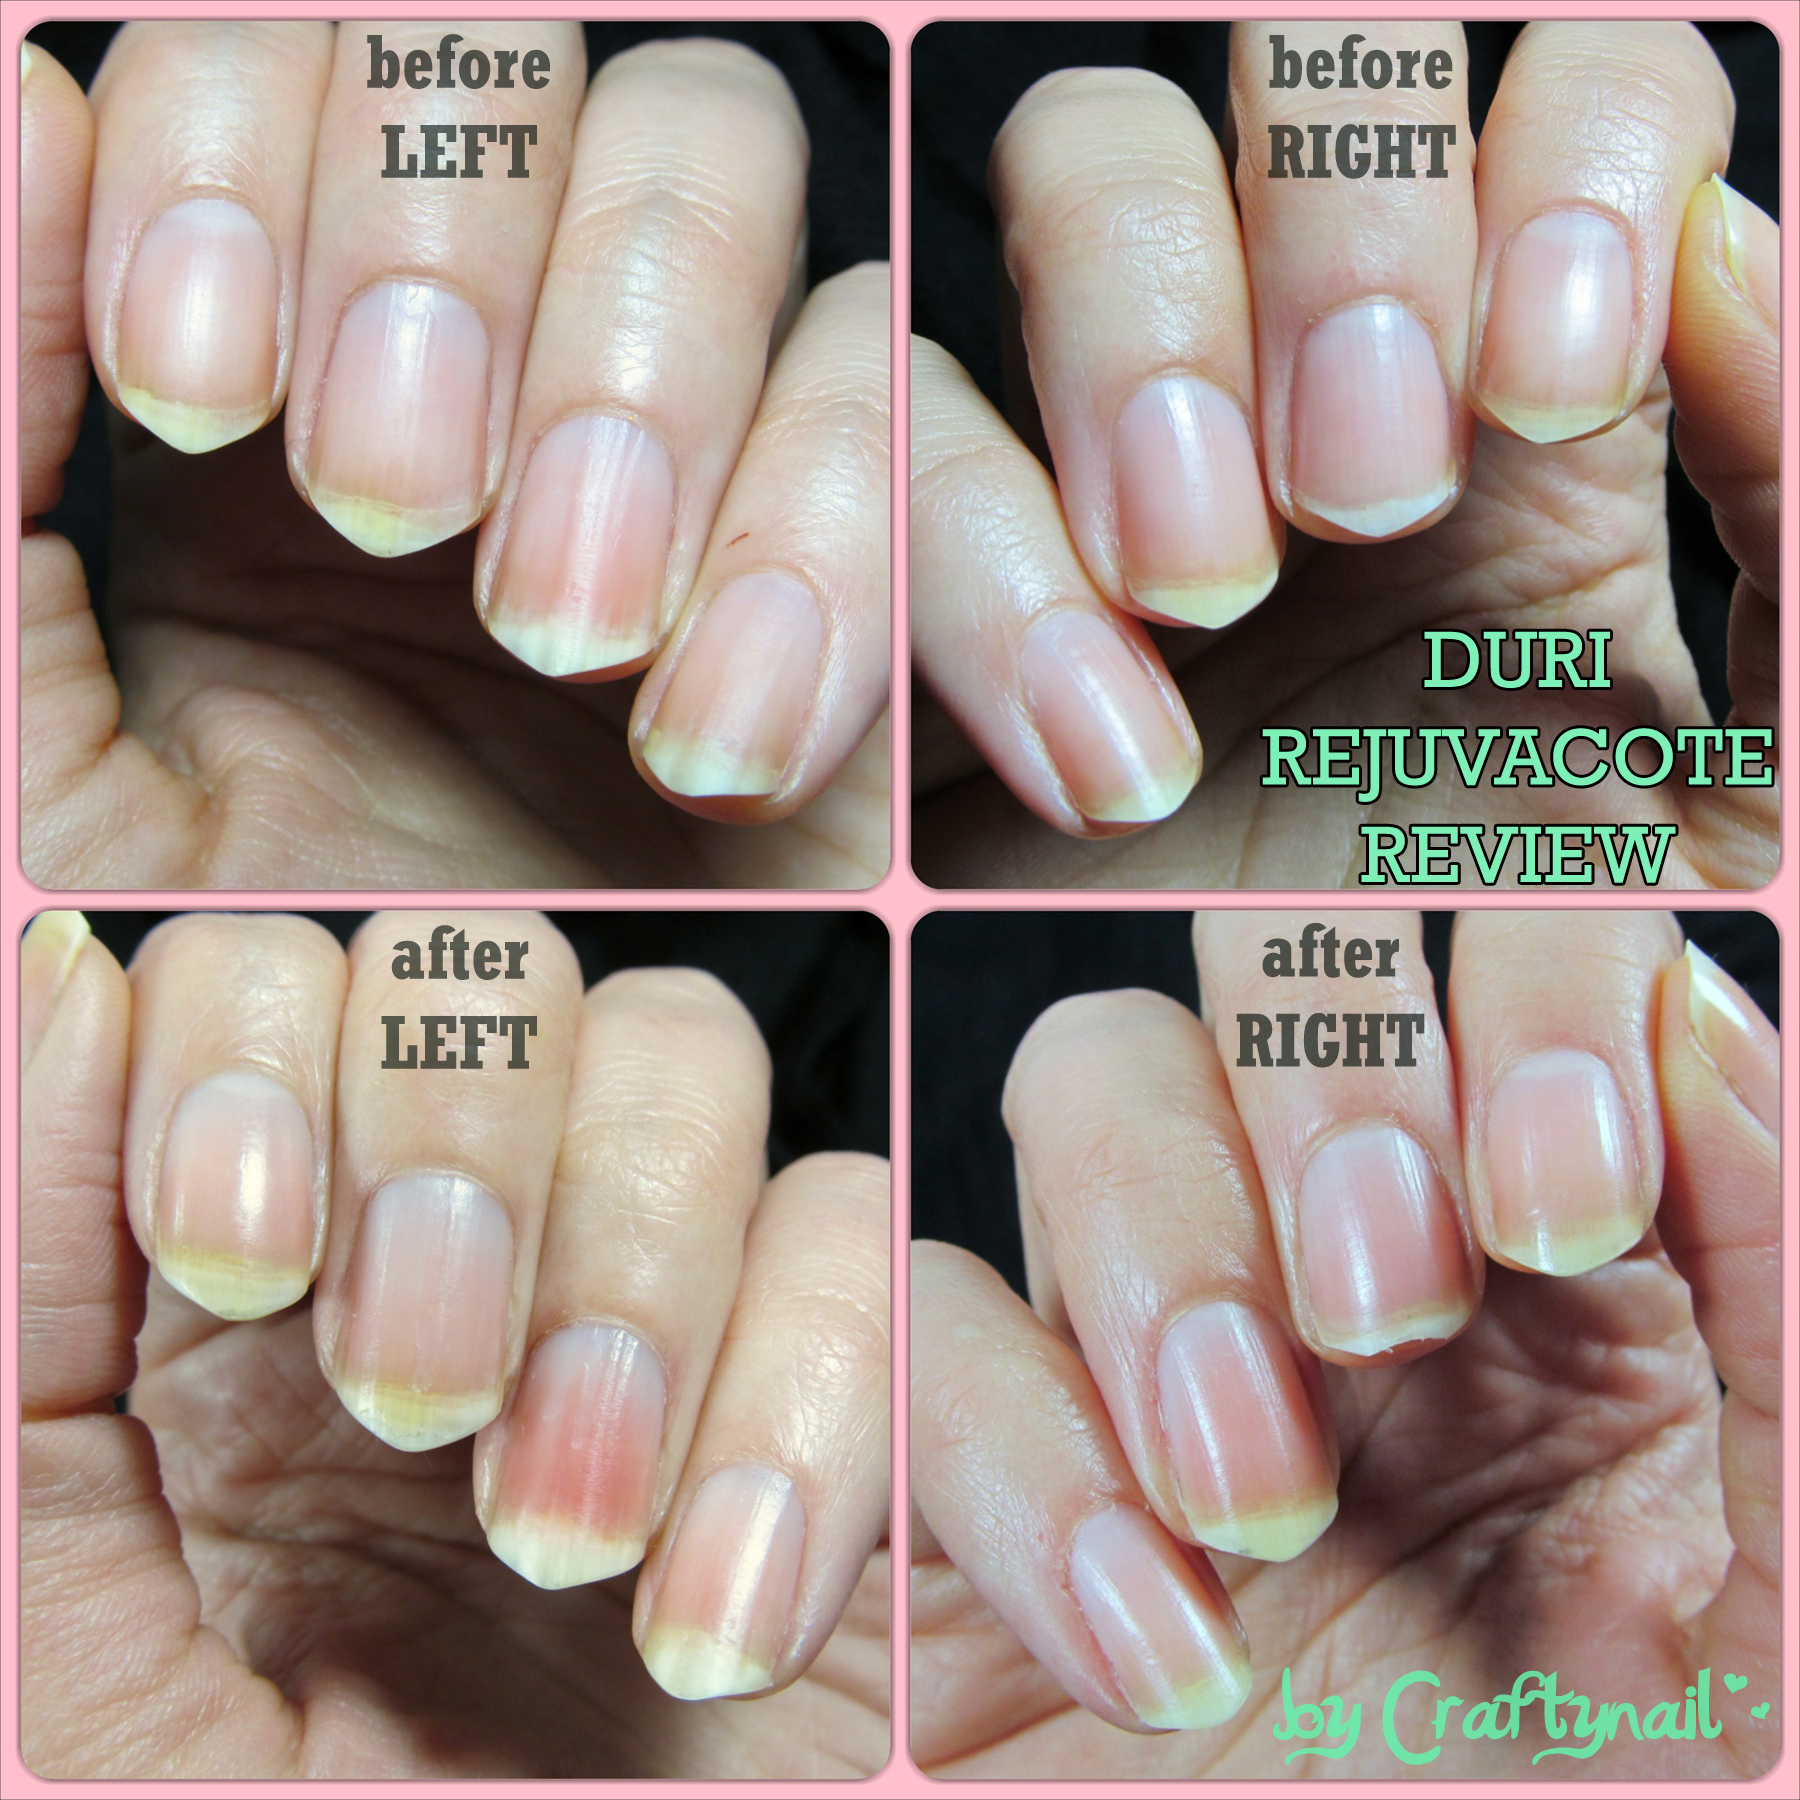 Duri Rejuvacote Review (before and after) | Craftynail